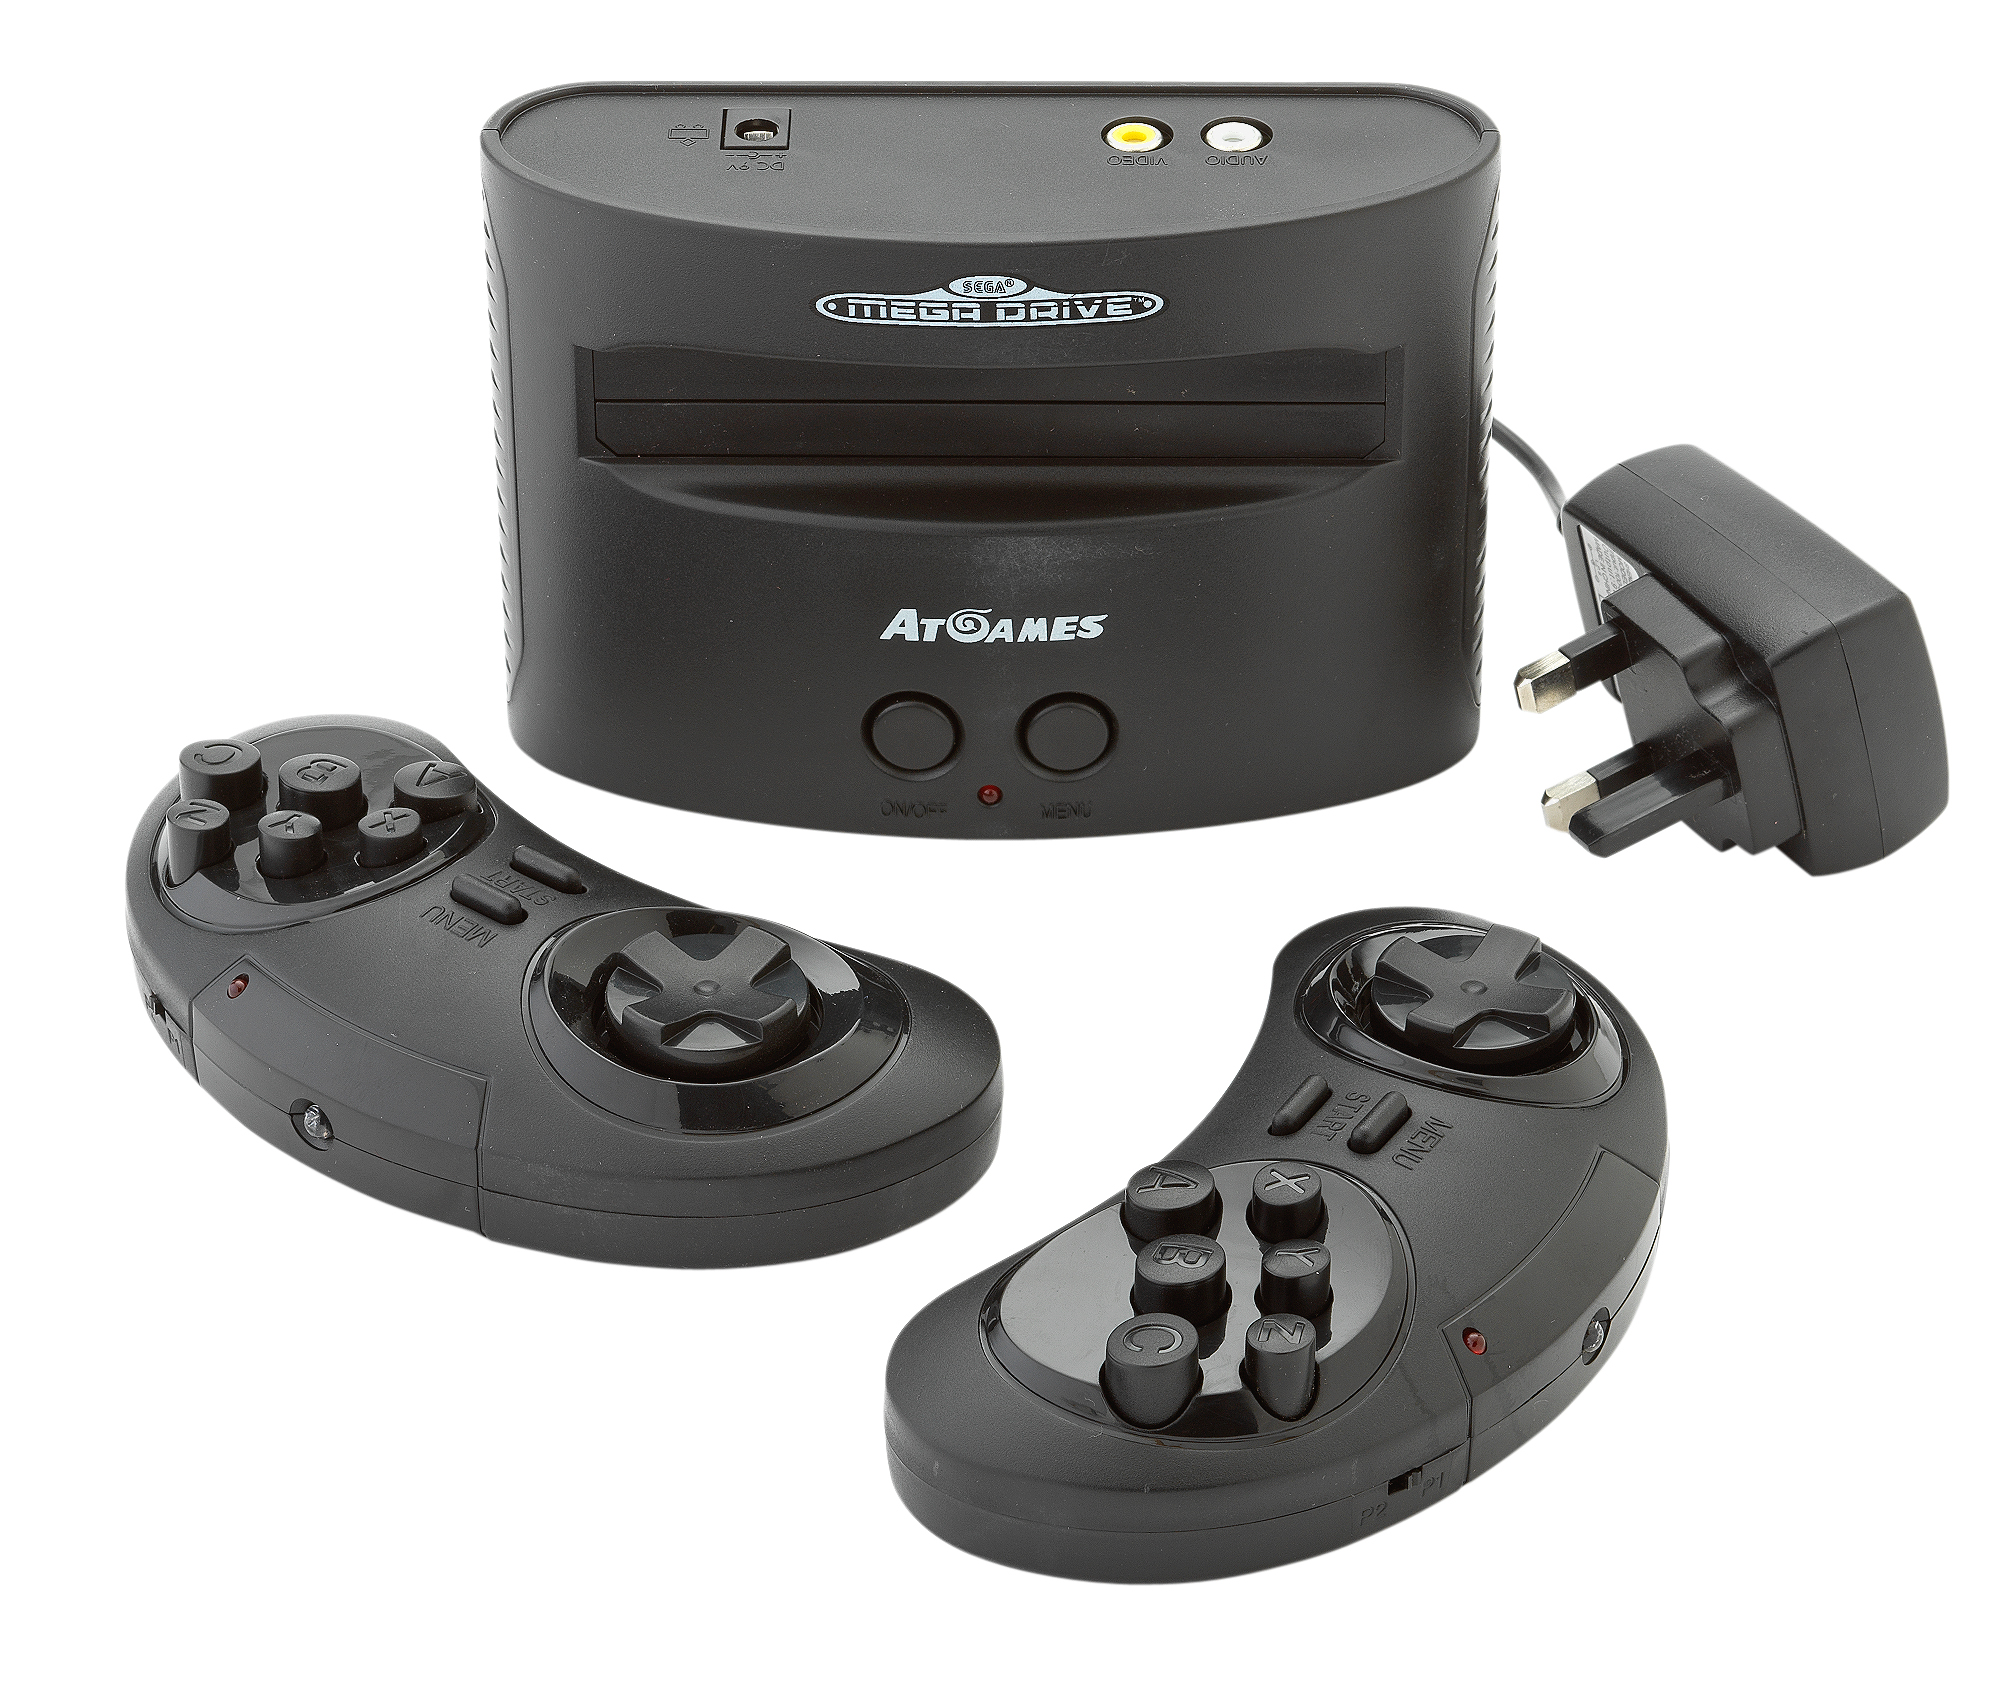 Argos: sales of Sega Megadrive consoles have risen by 400% compared with the same period last year